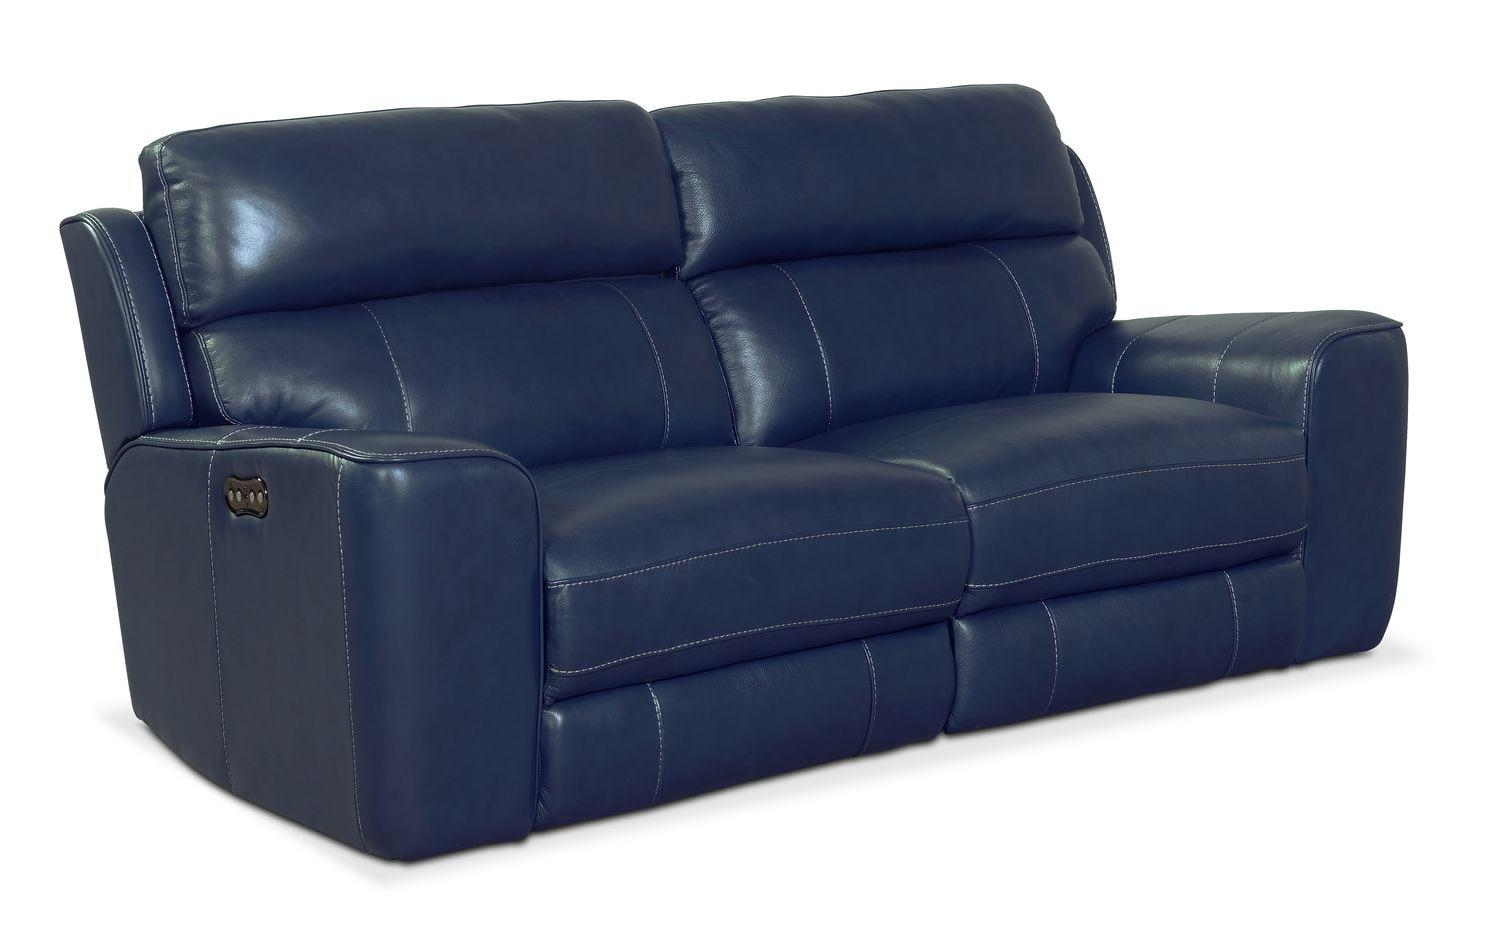 Newport 2 Piece Power Reclining Sofa – Blue | Value City Furniture Pertaining To Newport Sofas (Image 8 of 20)